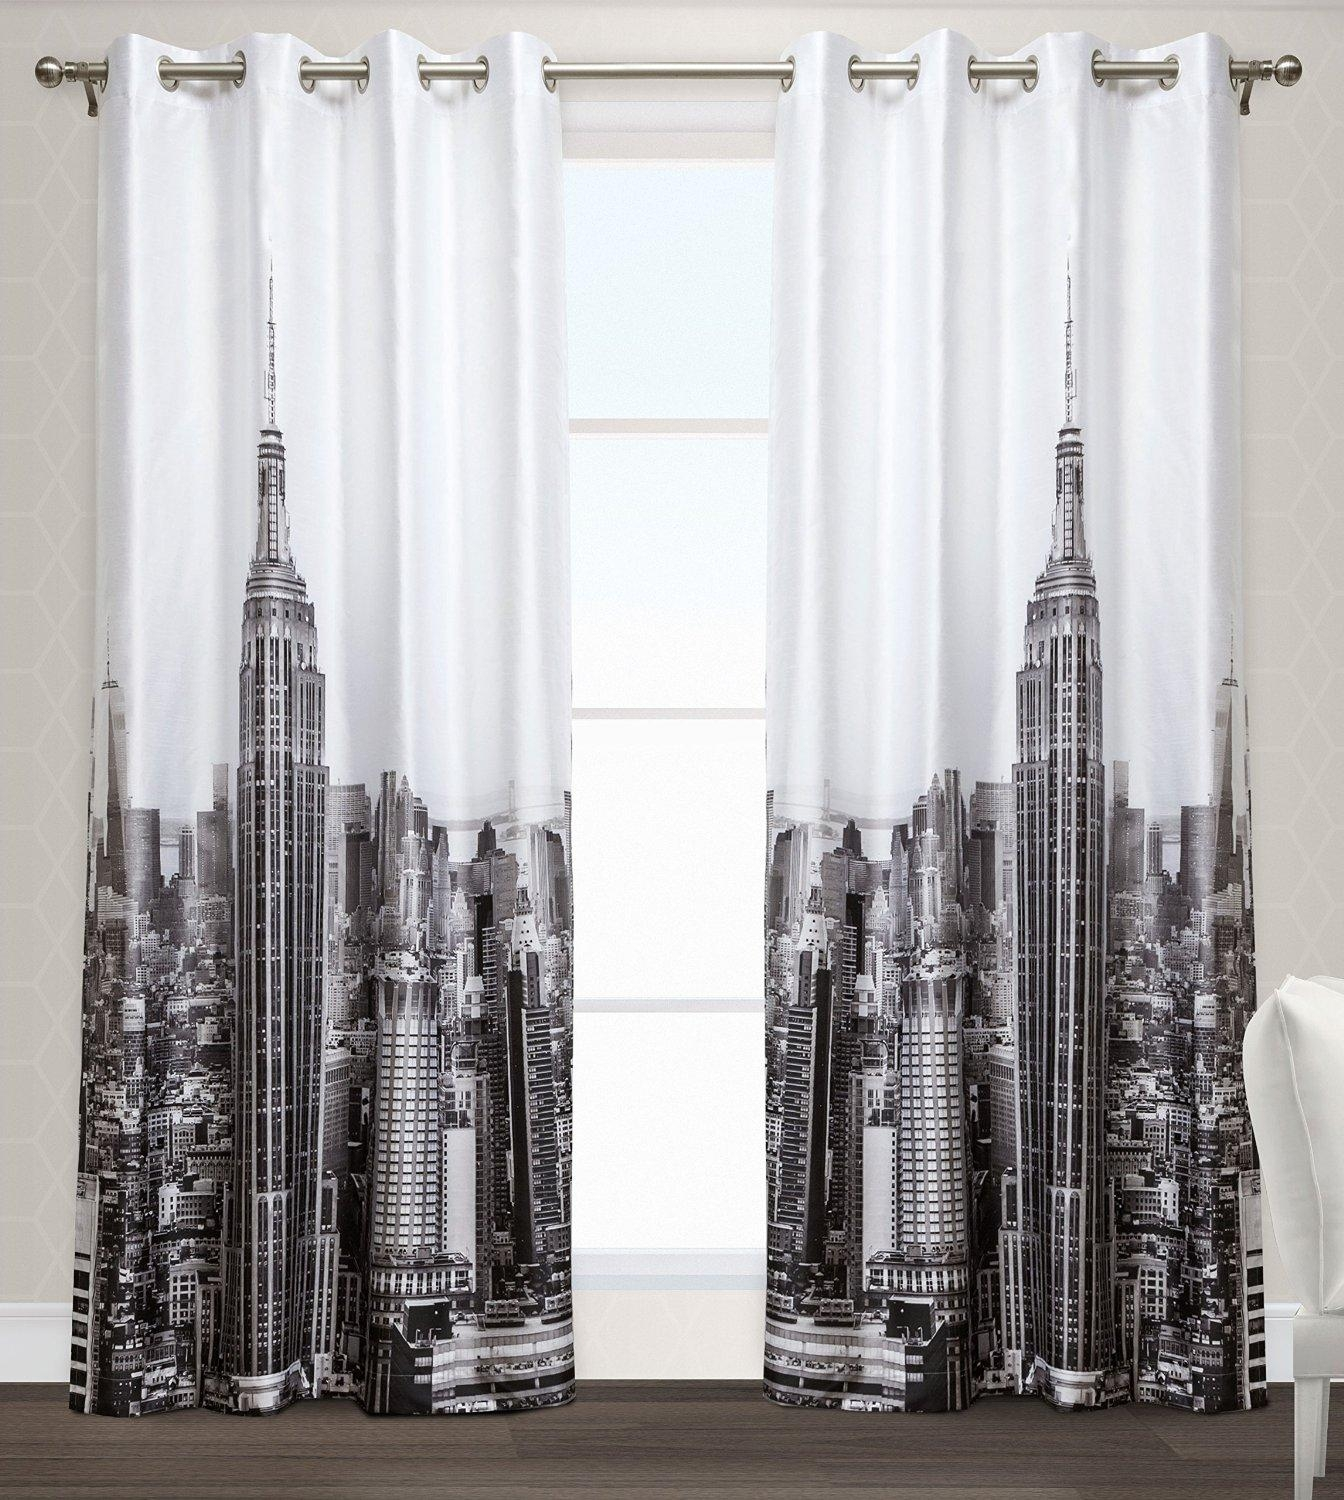 Curtains Ikea Curtains 96 Inch Curtains Grey And Beige Curtains Within 96 Inches Long Curtains (Image 20 of 25)